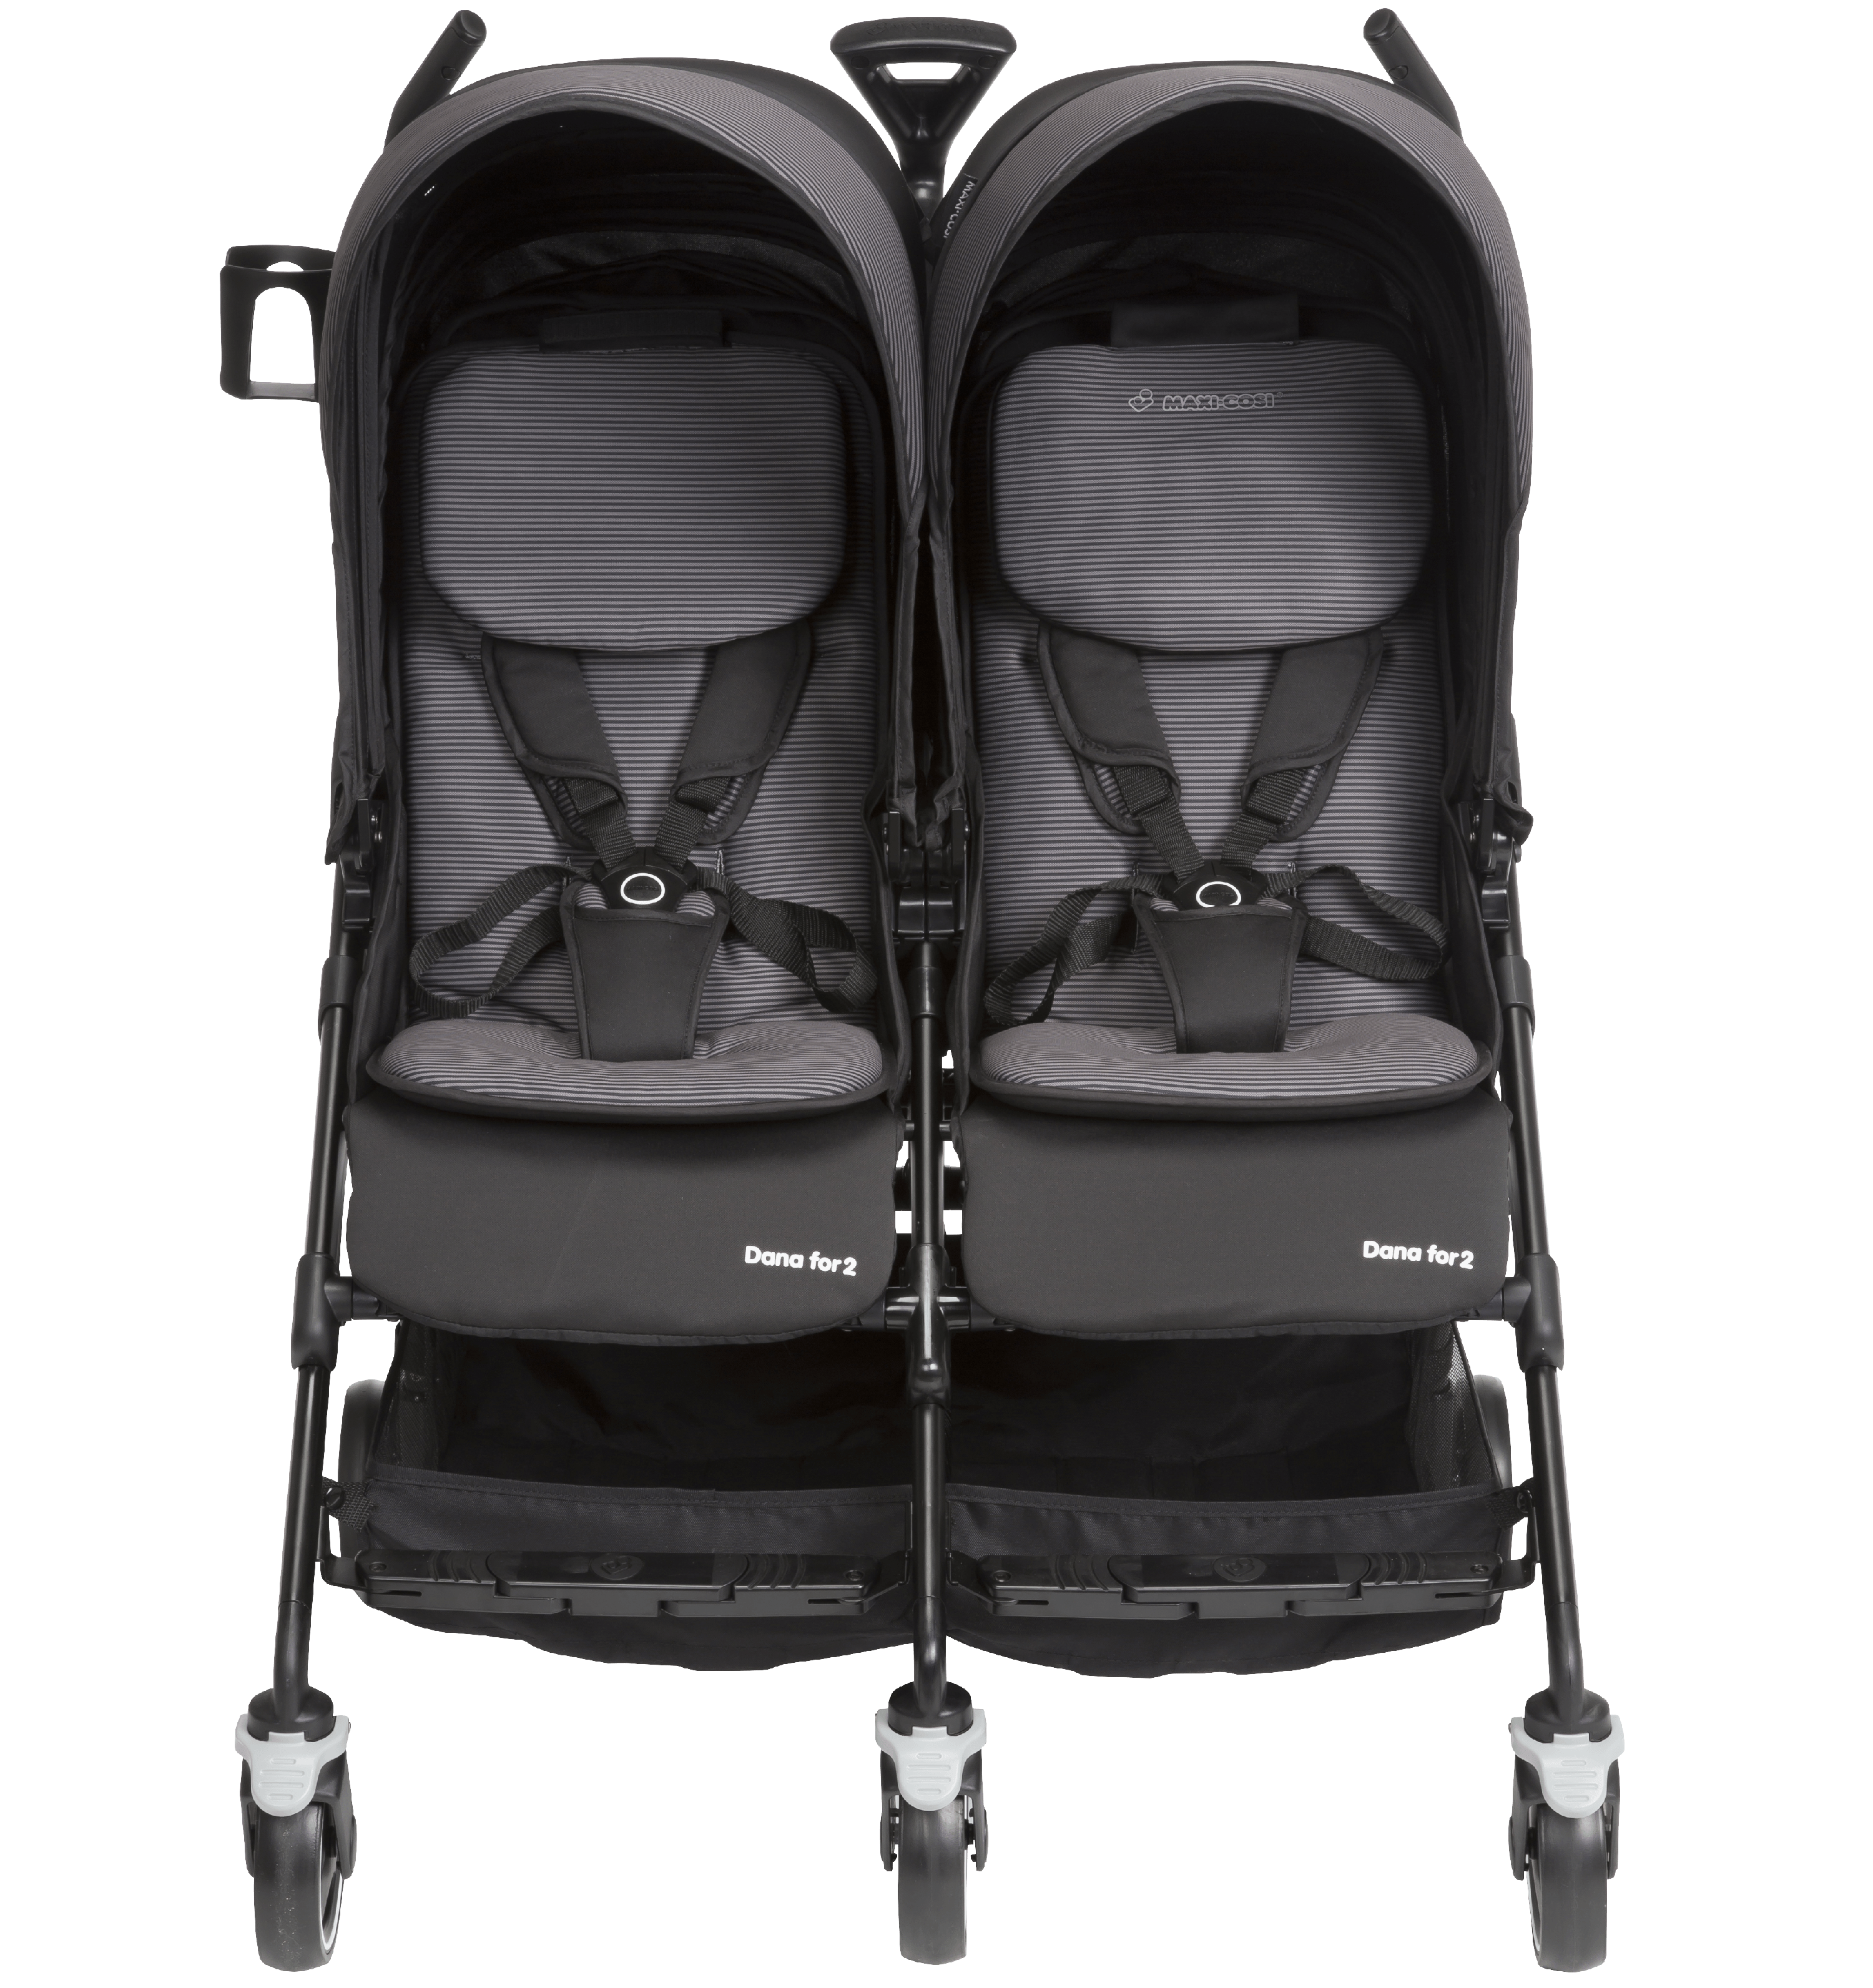 Maxi Cosi Dana For2 Double Stroller, Devoted Black